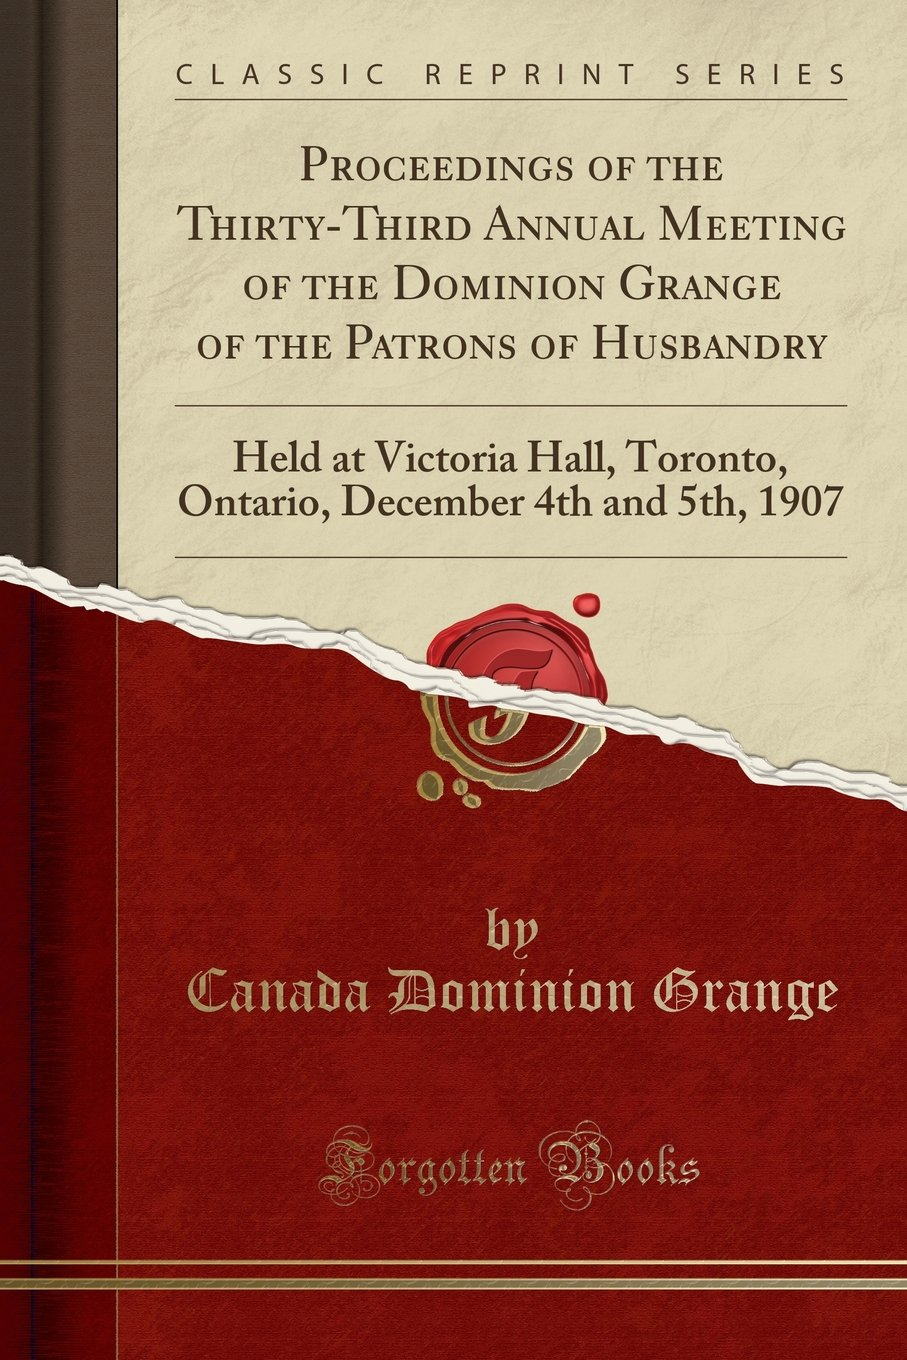 Read Online Proceedings of the Thirty-Third Annual Meeting of the Dominion Grange of the Patrons of Husbandry: Held at Victoria Hall, Toronto, Ontario, December 4th and 5th, 1907 (Classic Reprint) pdf epub